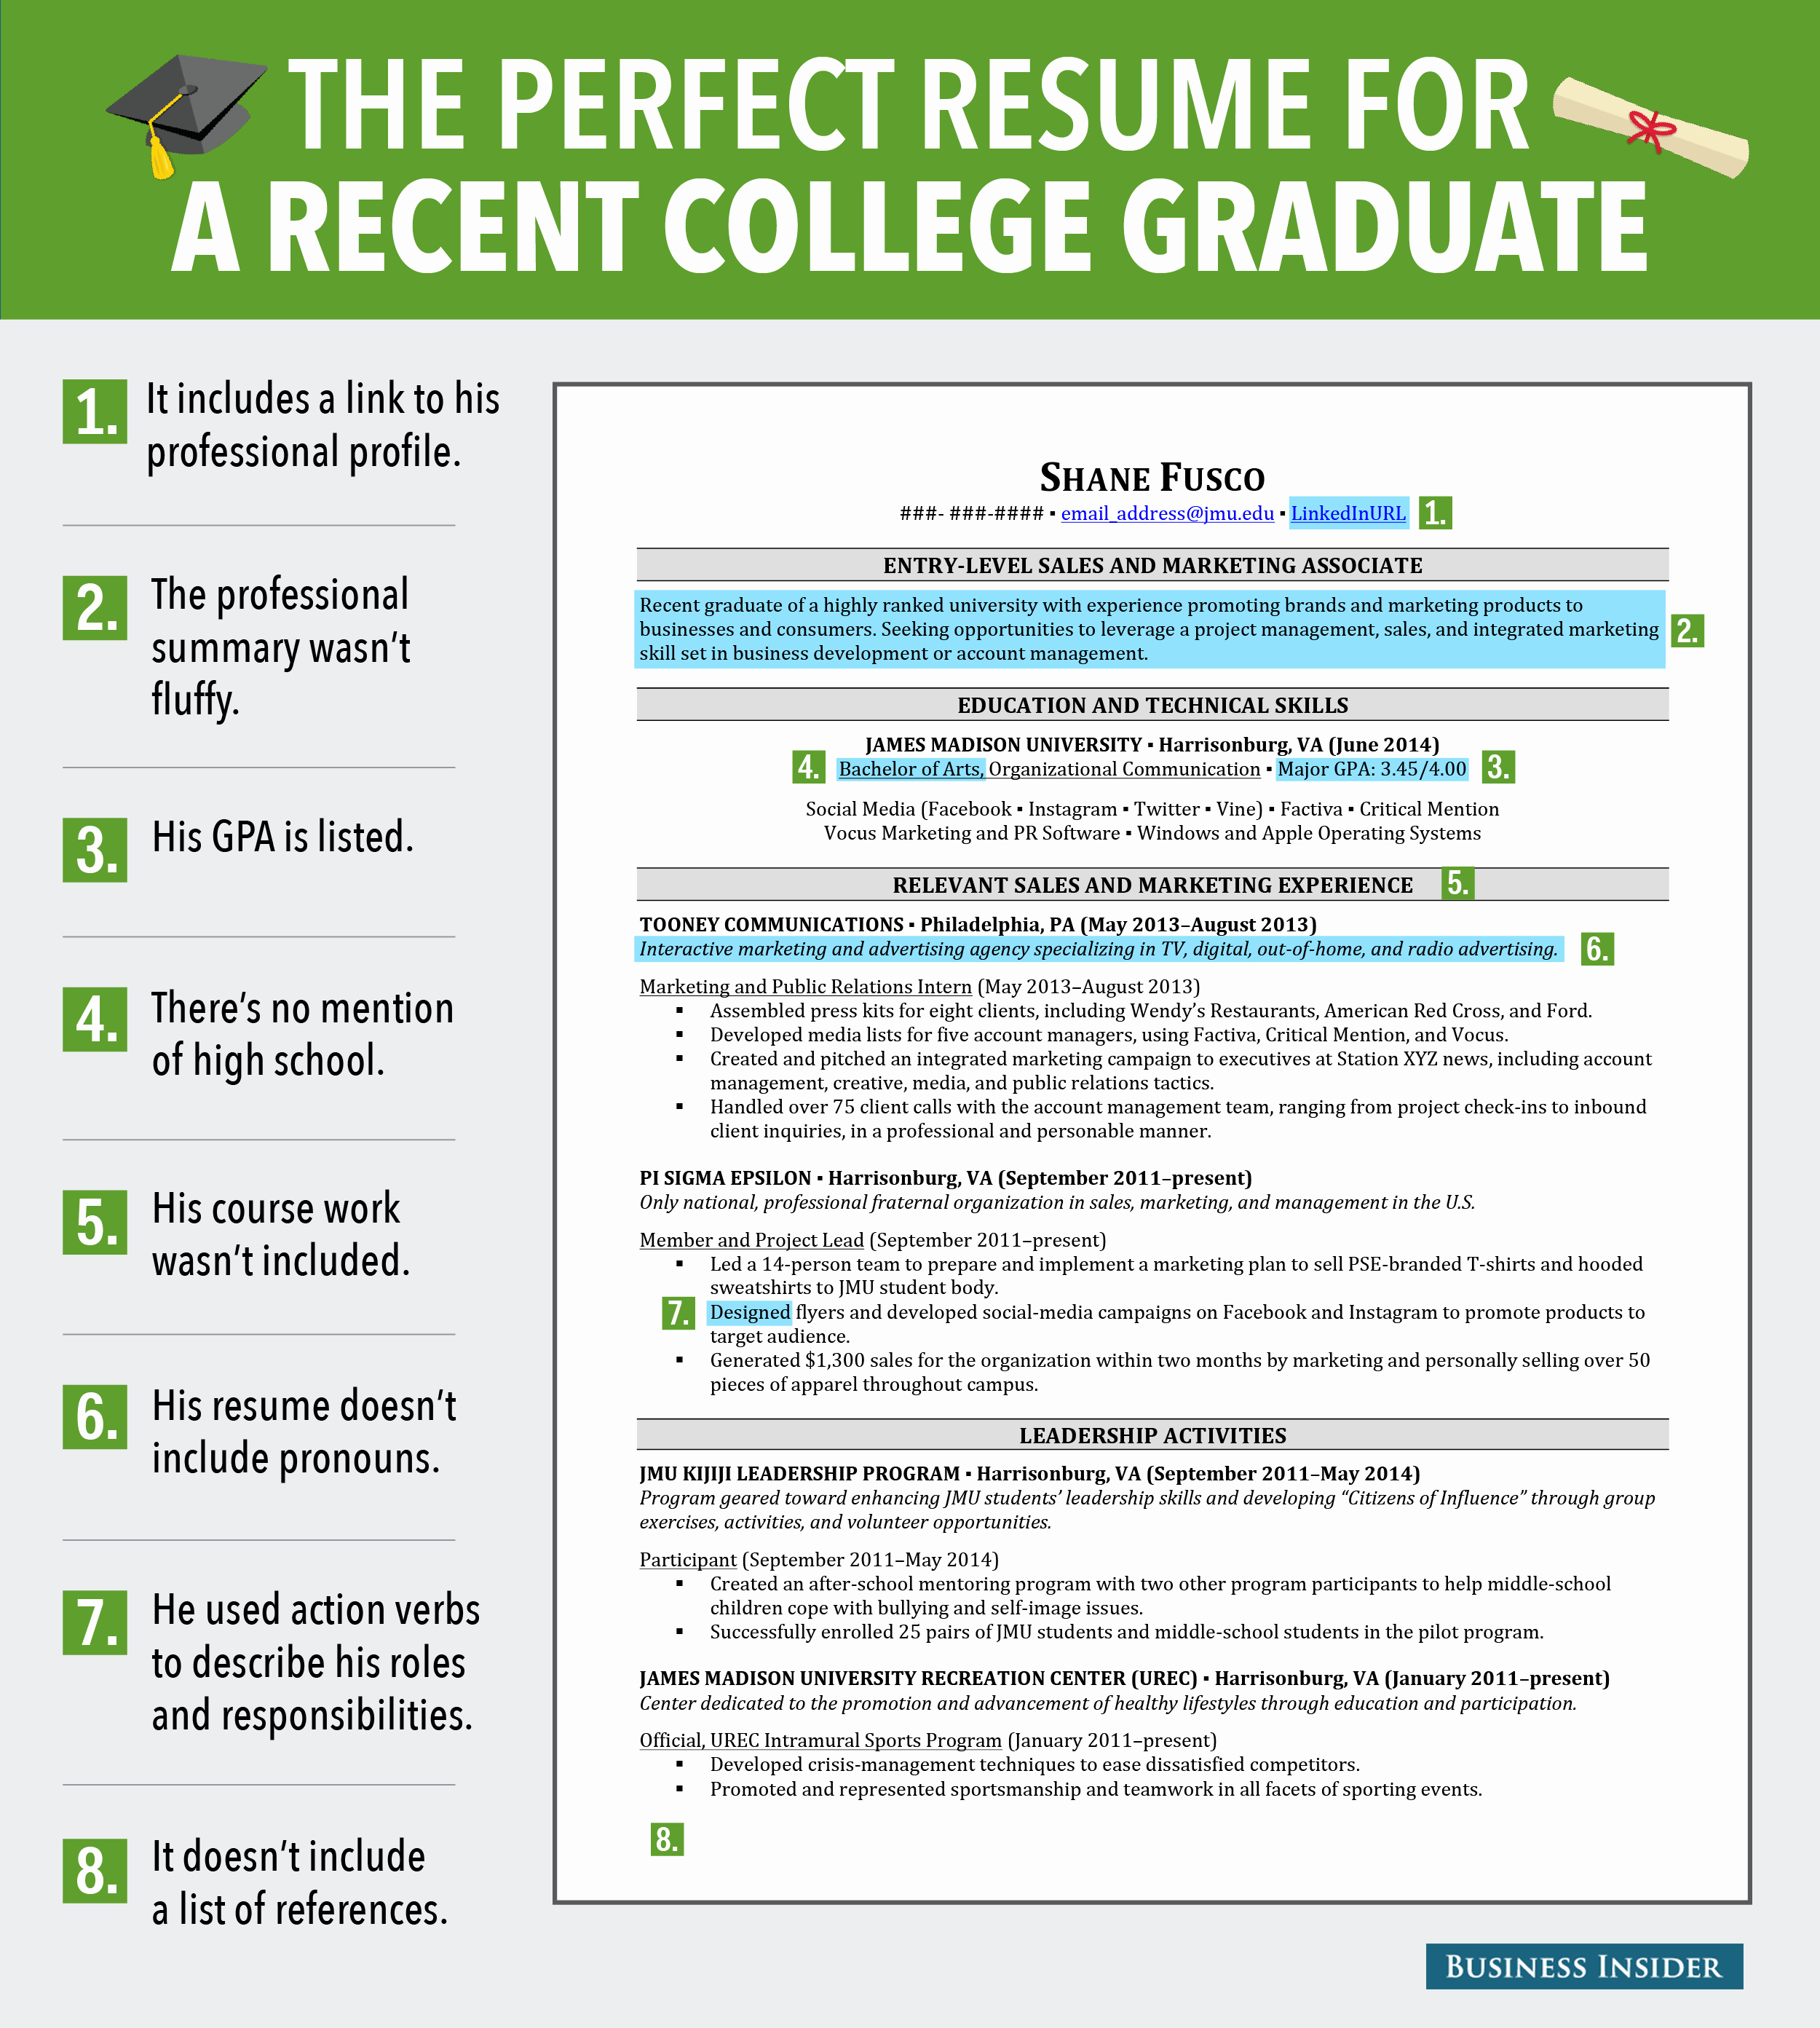 Resumes for Recent College Graduates Lovely Excellent Resume for Recent Grad Business Insider